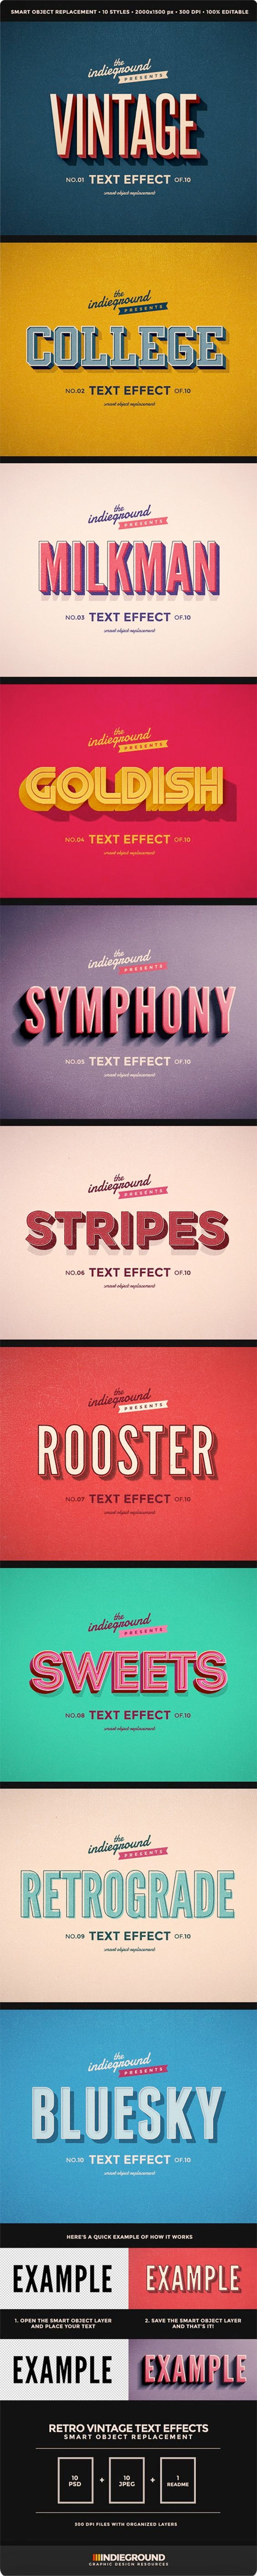 retro and vintage type effects